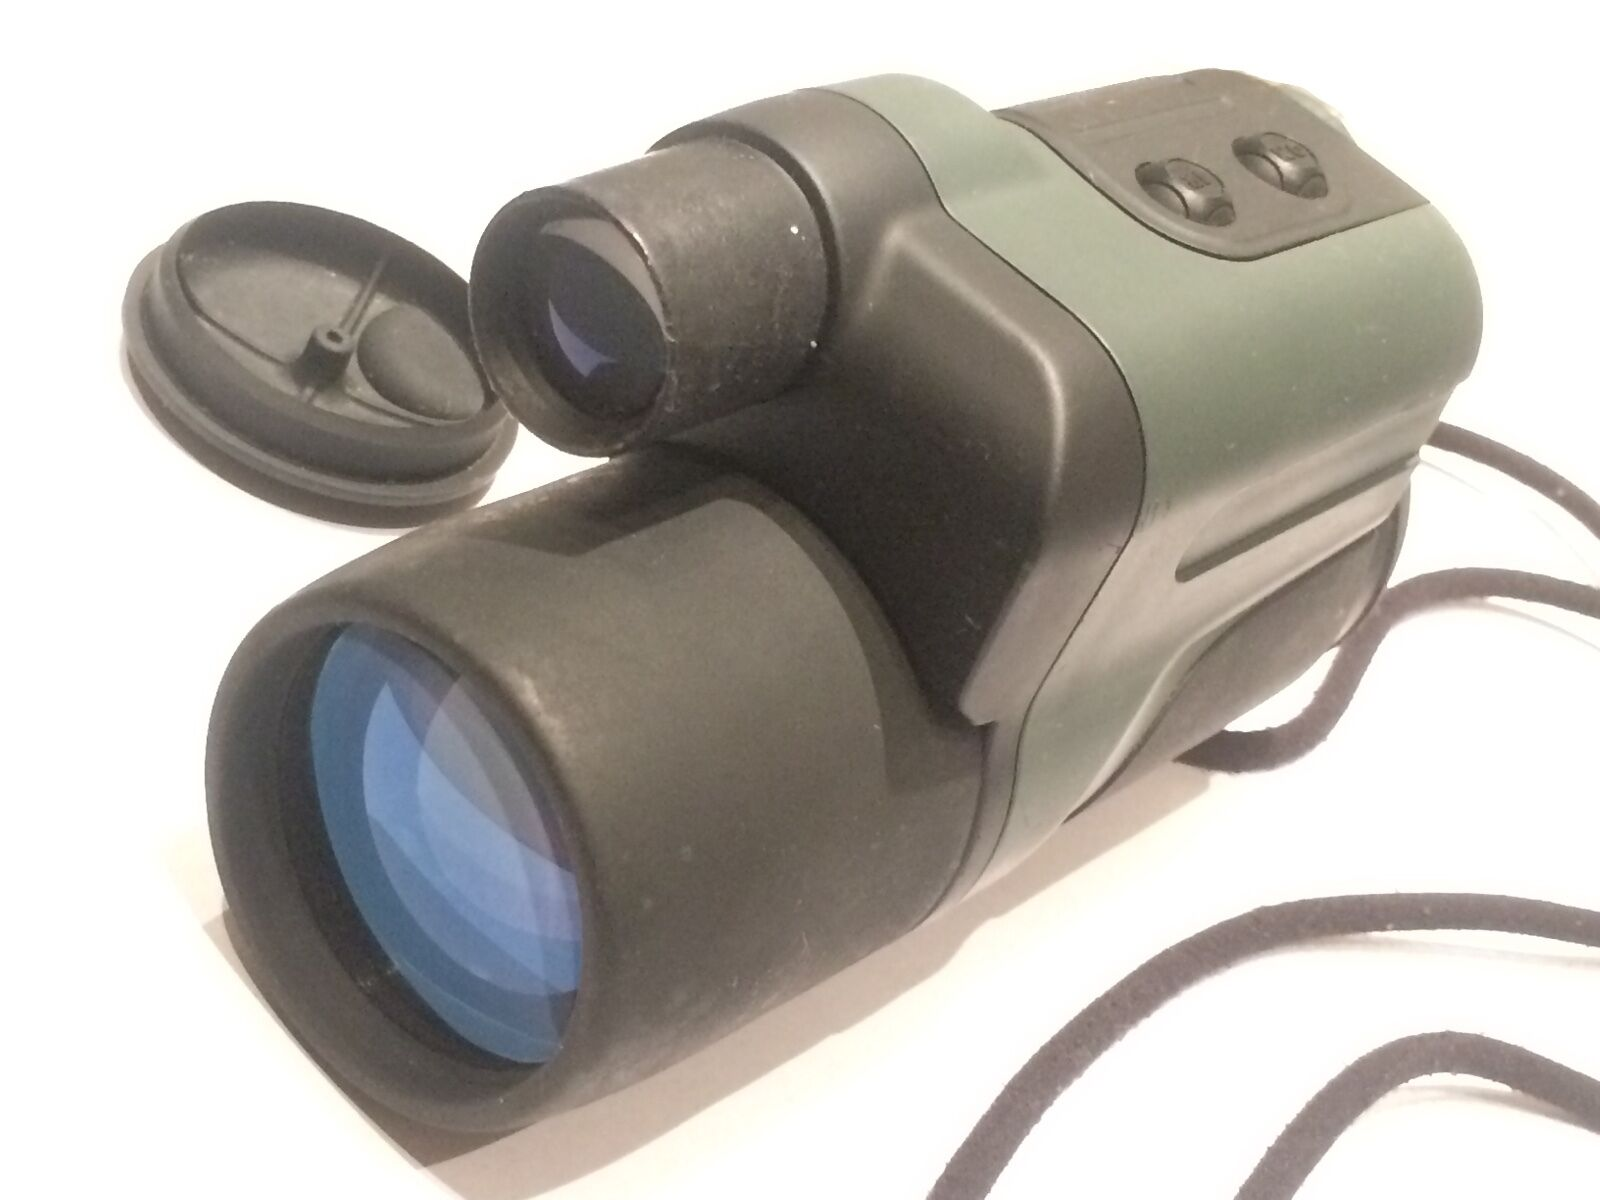 NEWTON NV 3X42 NIGHT VISION MONOCULAR WITH INFRARED